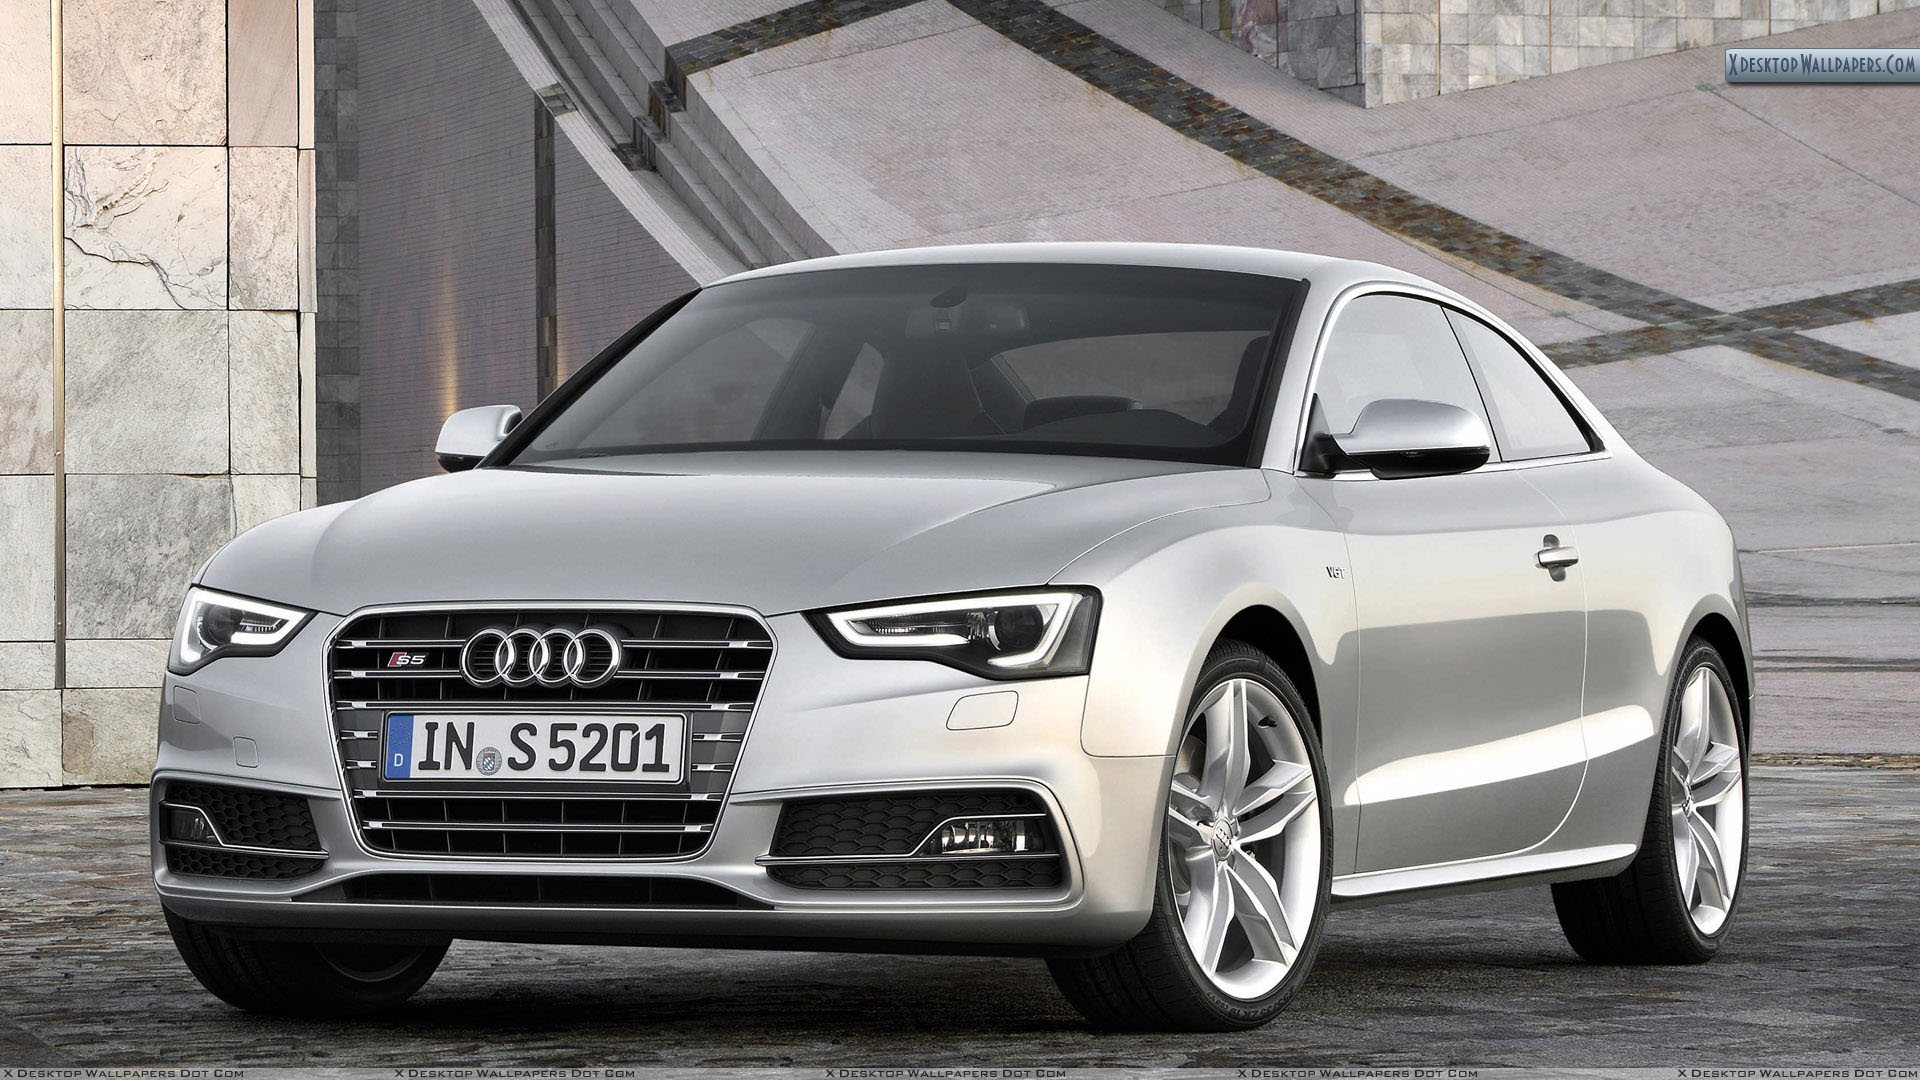 Audi S5 Wallpapers Photos Images In Hd